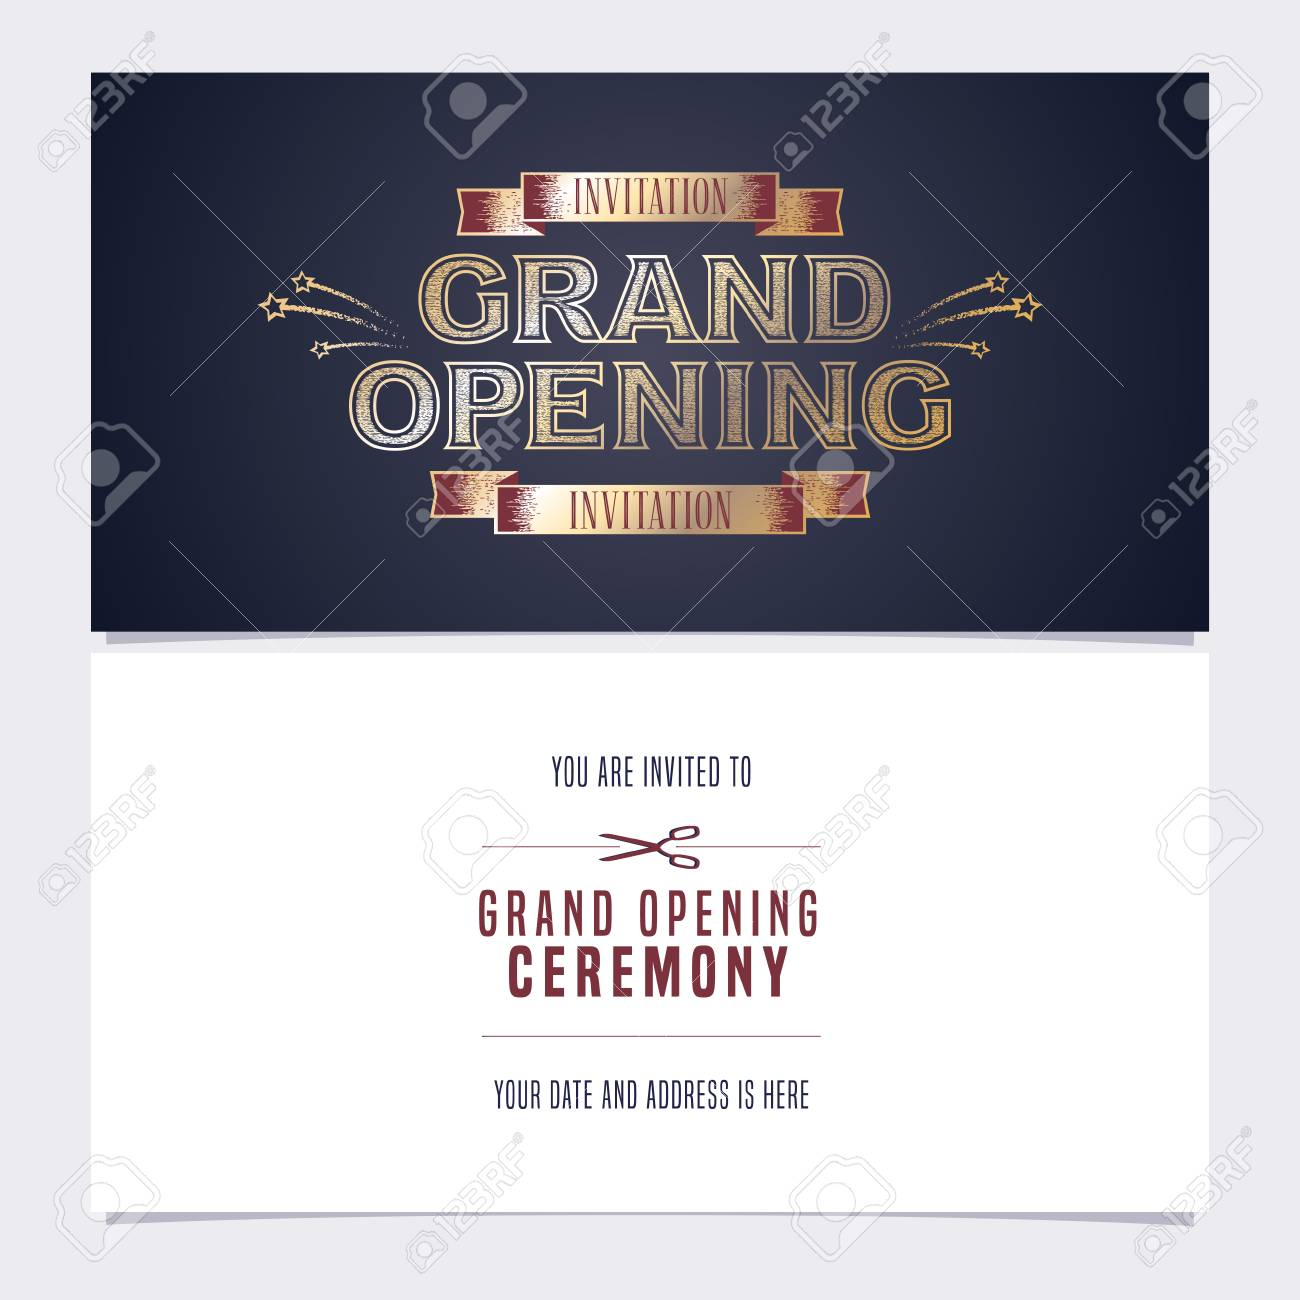 Grand opening vector illustration invitation card template double banco de imagens grand opening vector illustration invitation card template double sided banner invite design for opening event stopboris Gallery